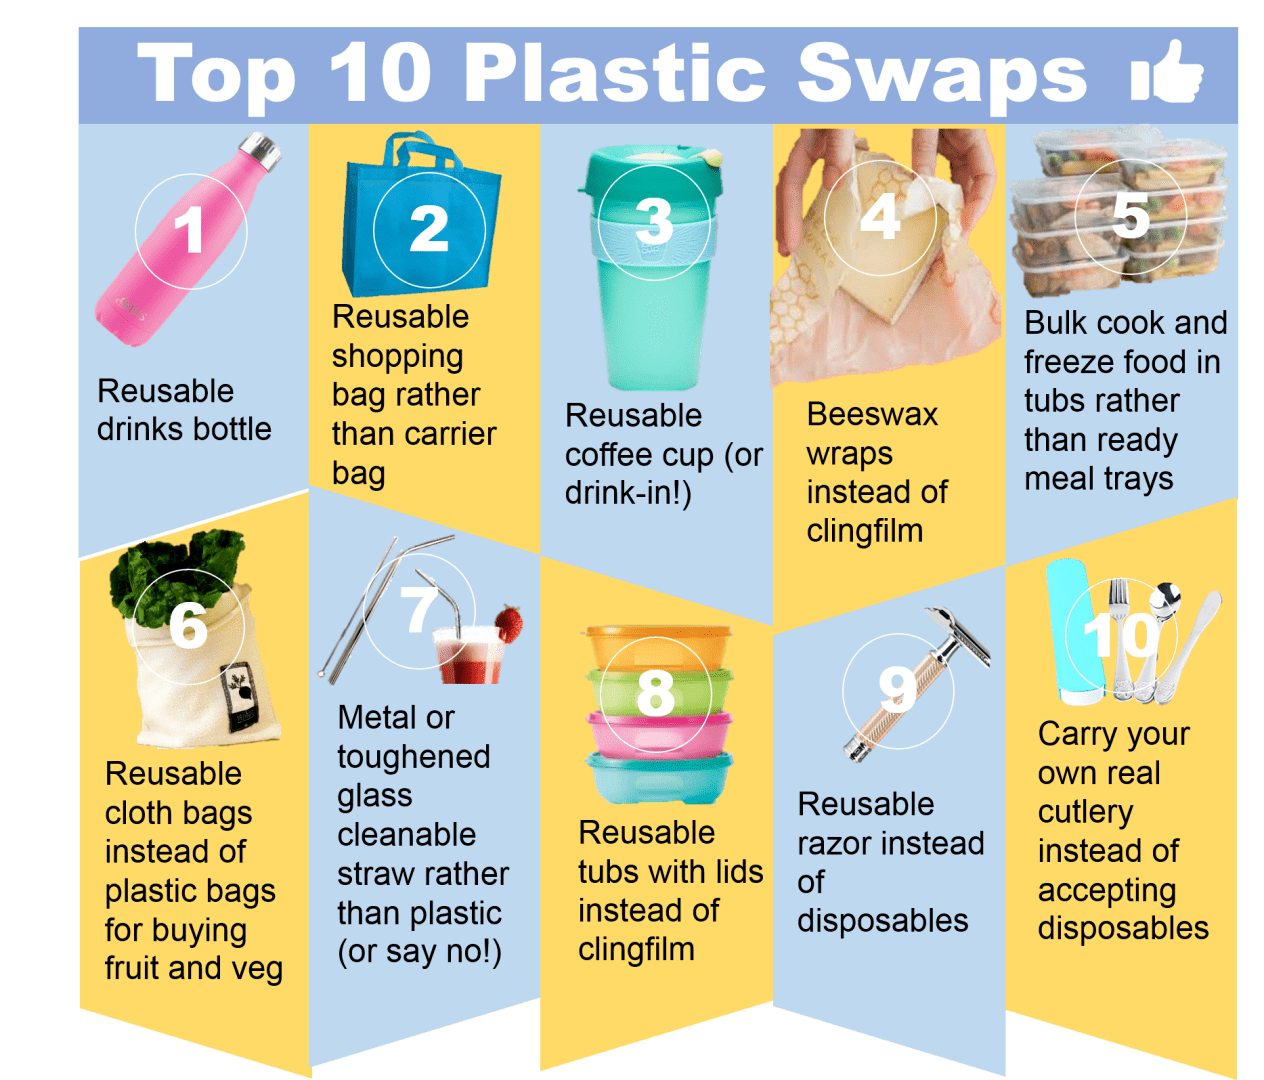 Top 10 Plastic Swaps picture details on website